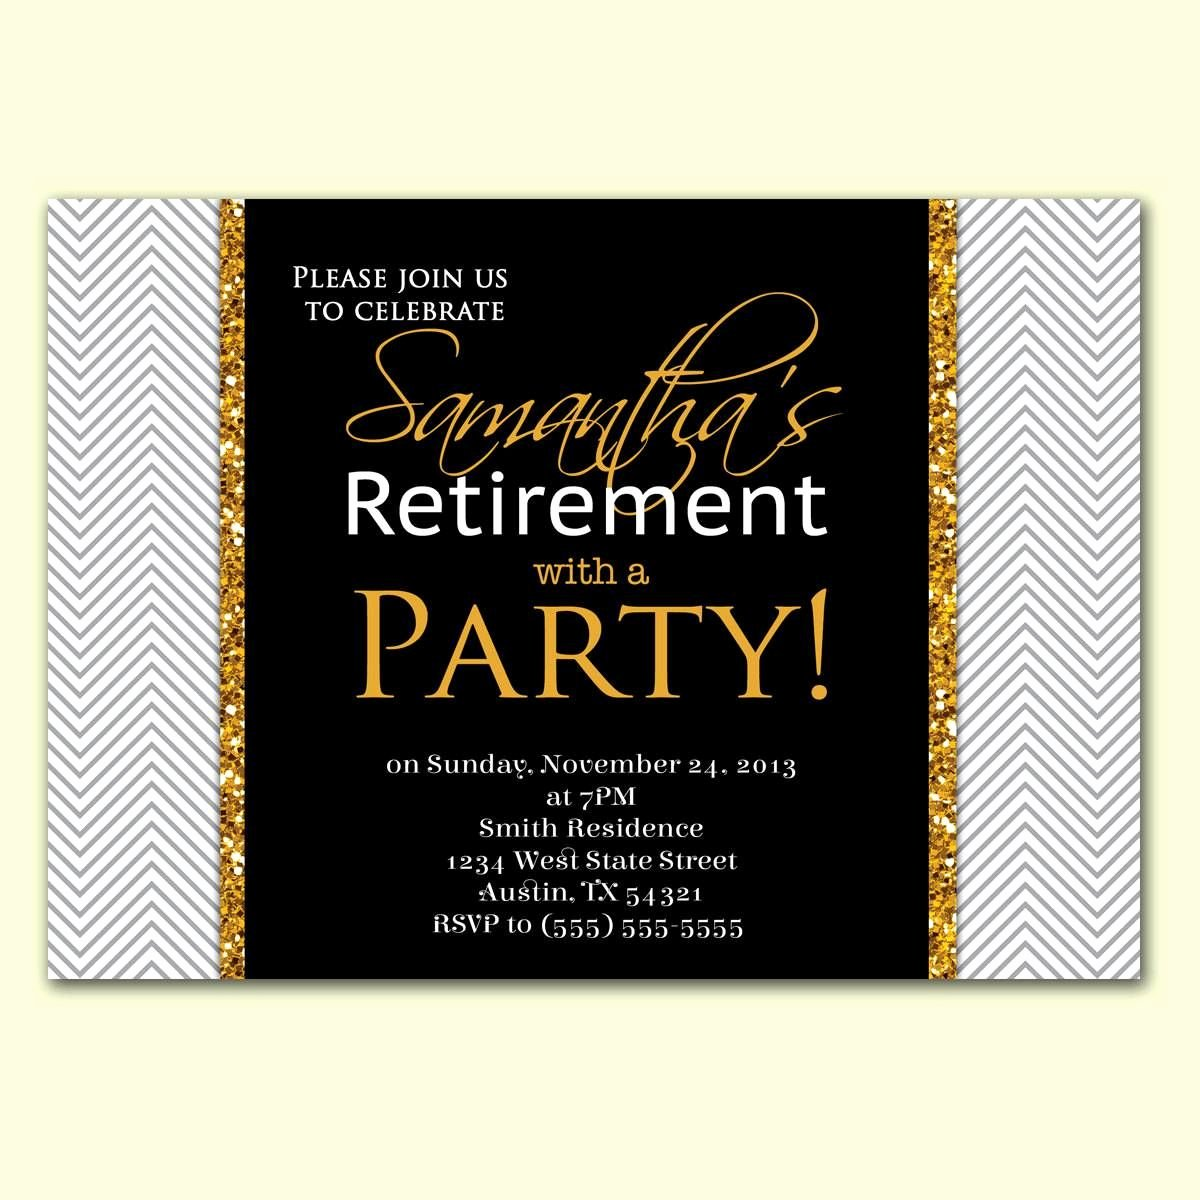 Retirement Dinner Invitation Template Beautiful Retirement Party Invitation Wording In Hindi